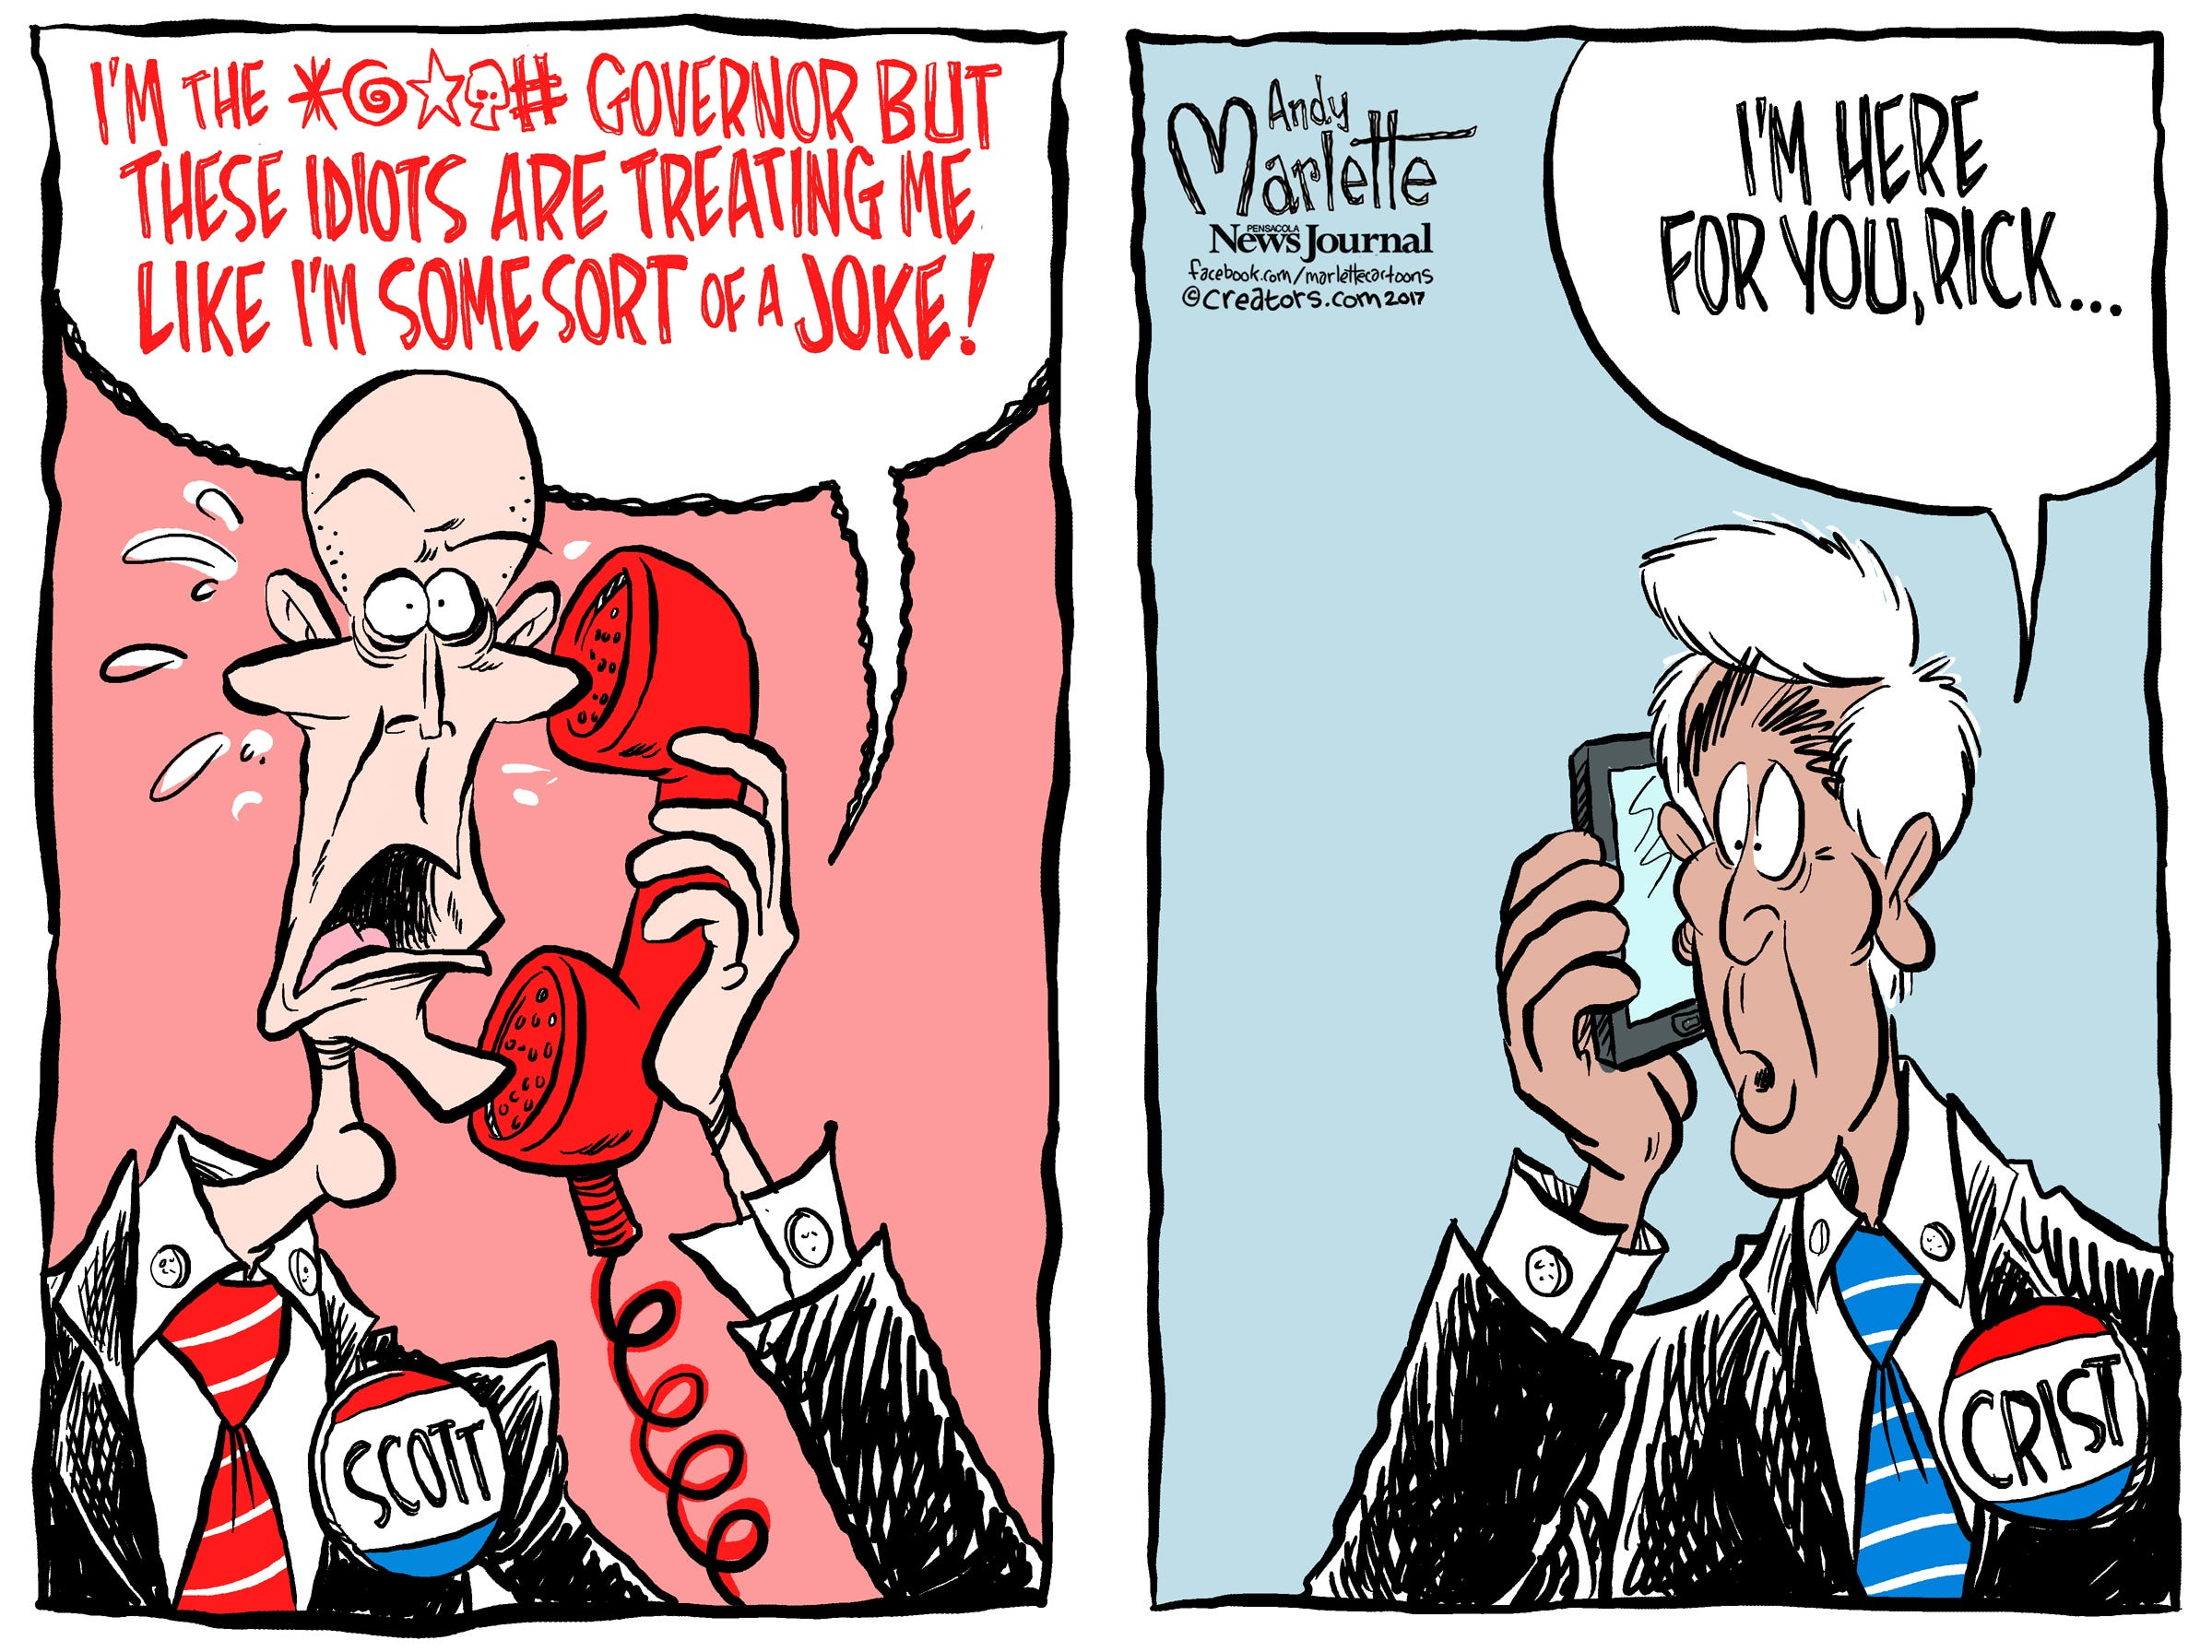 Super Ultimate Mega Cartoon Voter Guide to Rick Scott!